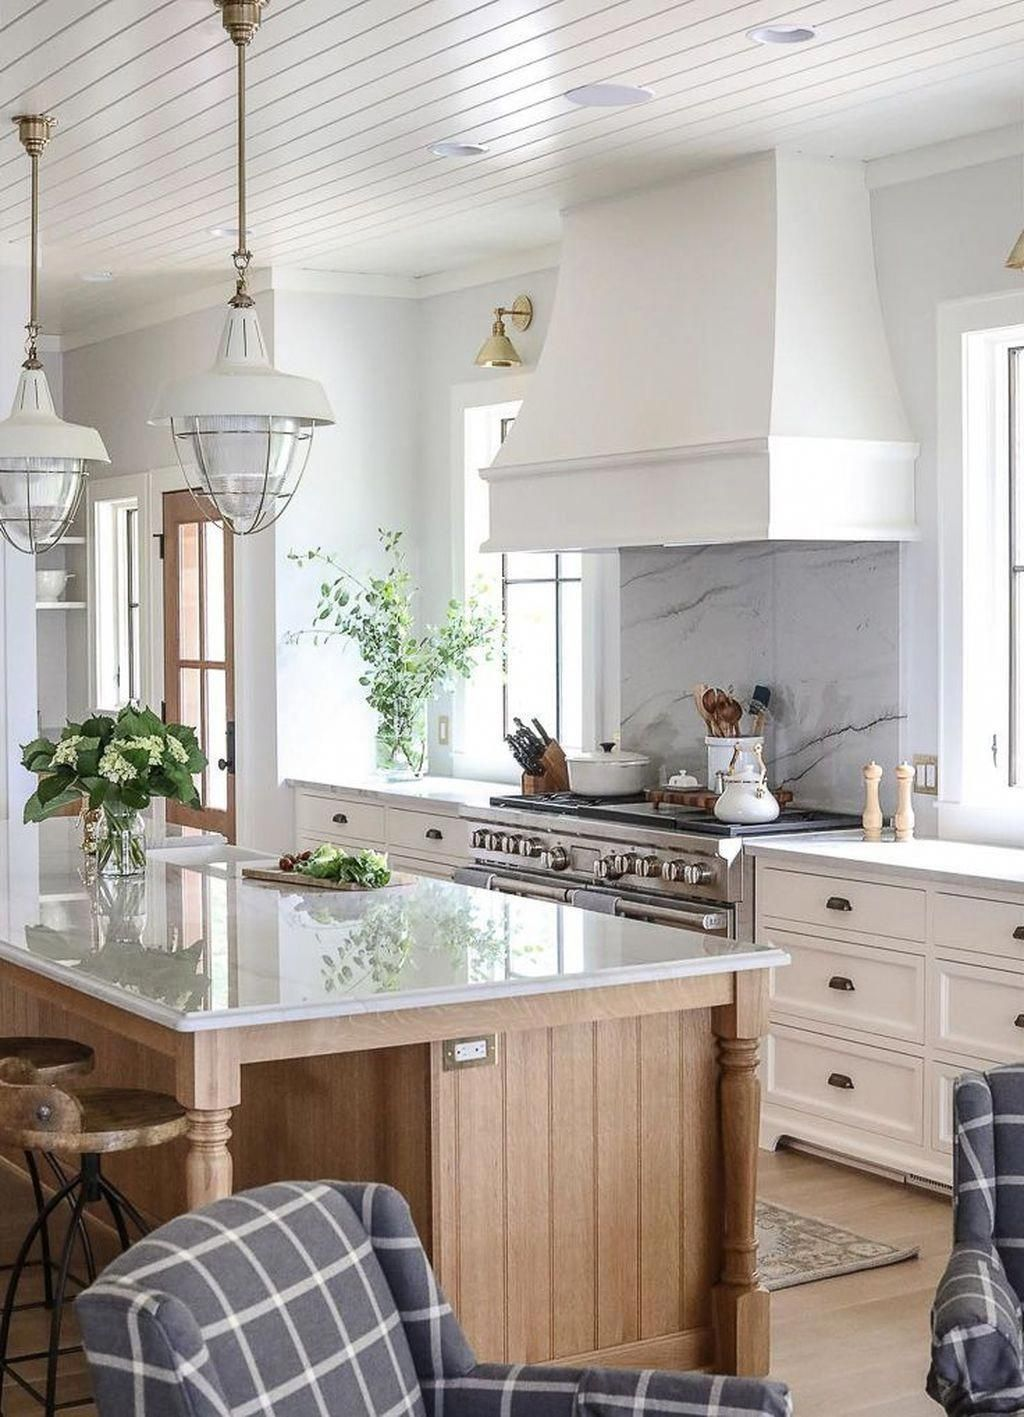 kitchendesign in 2020 kitchen trends farmhouse style kitchen kitchen interior on kitchen interior trend 2020 id=69047